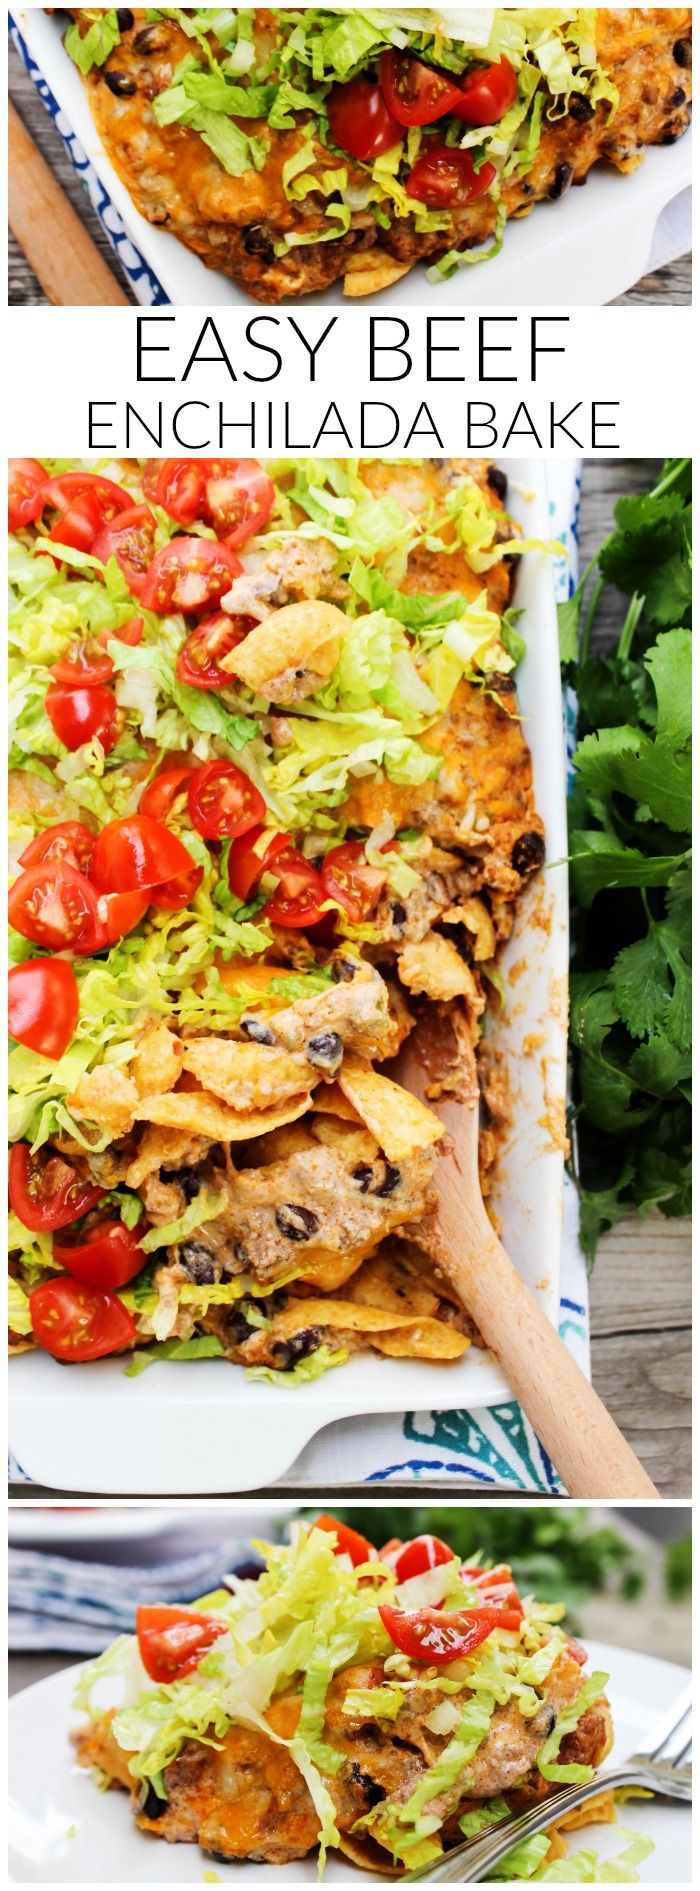 Easy Beef Enchilada Bake LONG PIN